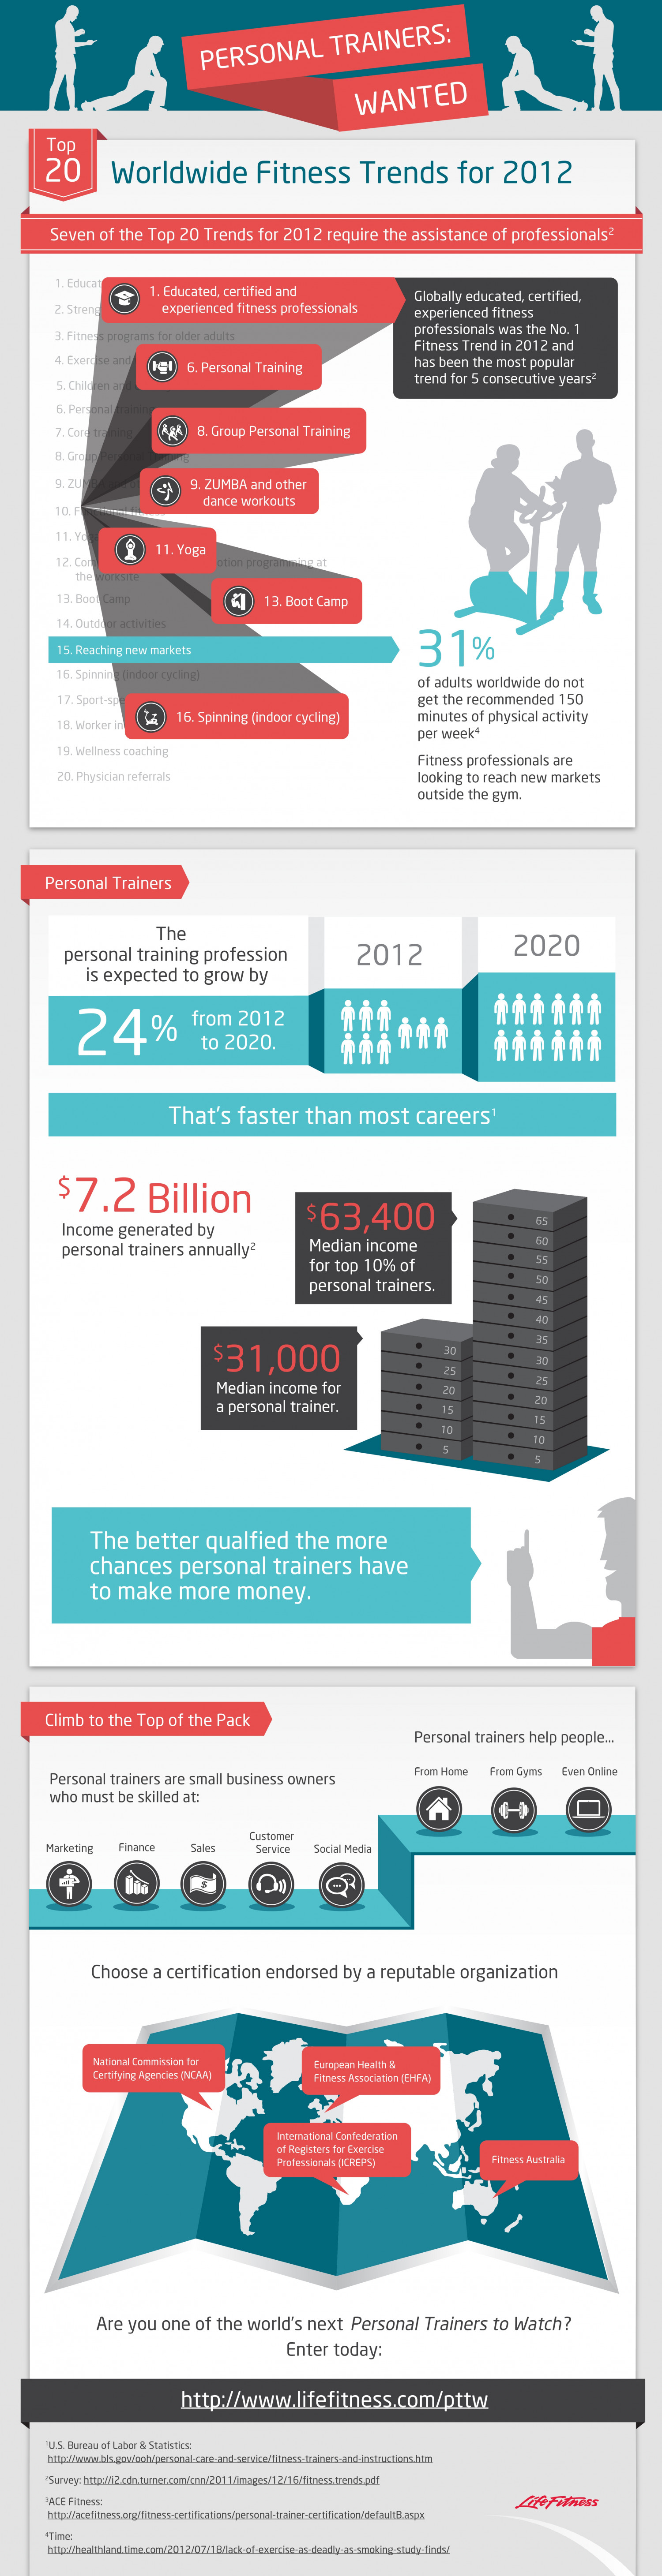 Worldwide Fitness Trends for 2012 Infographic